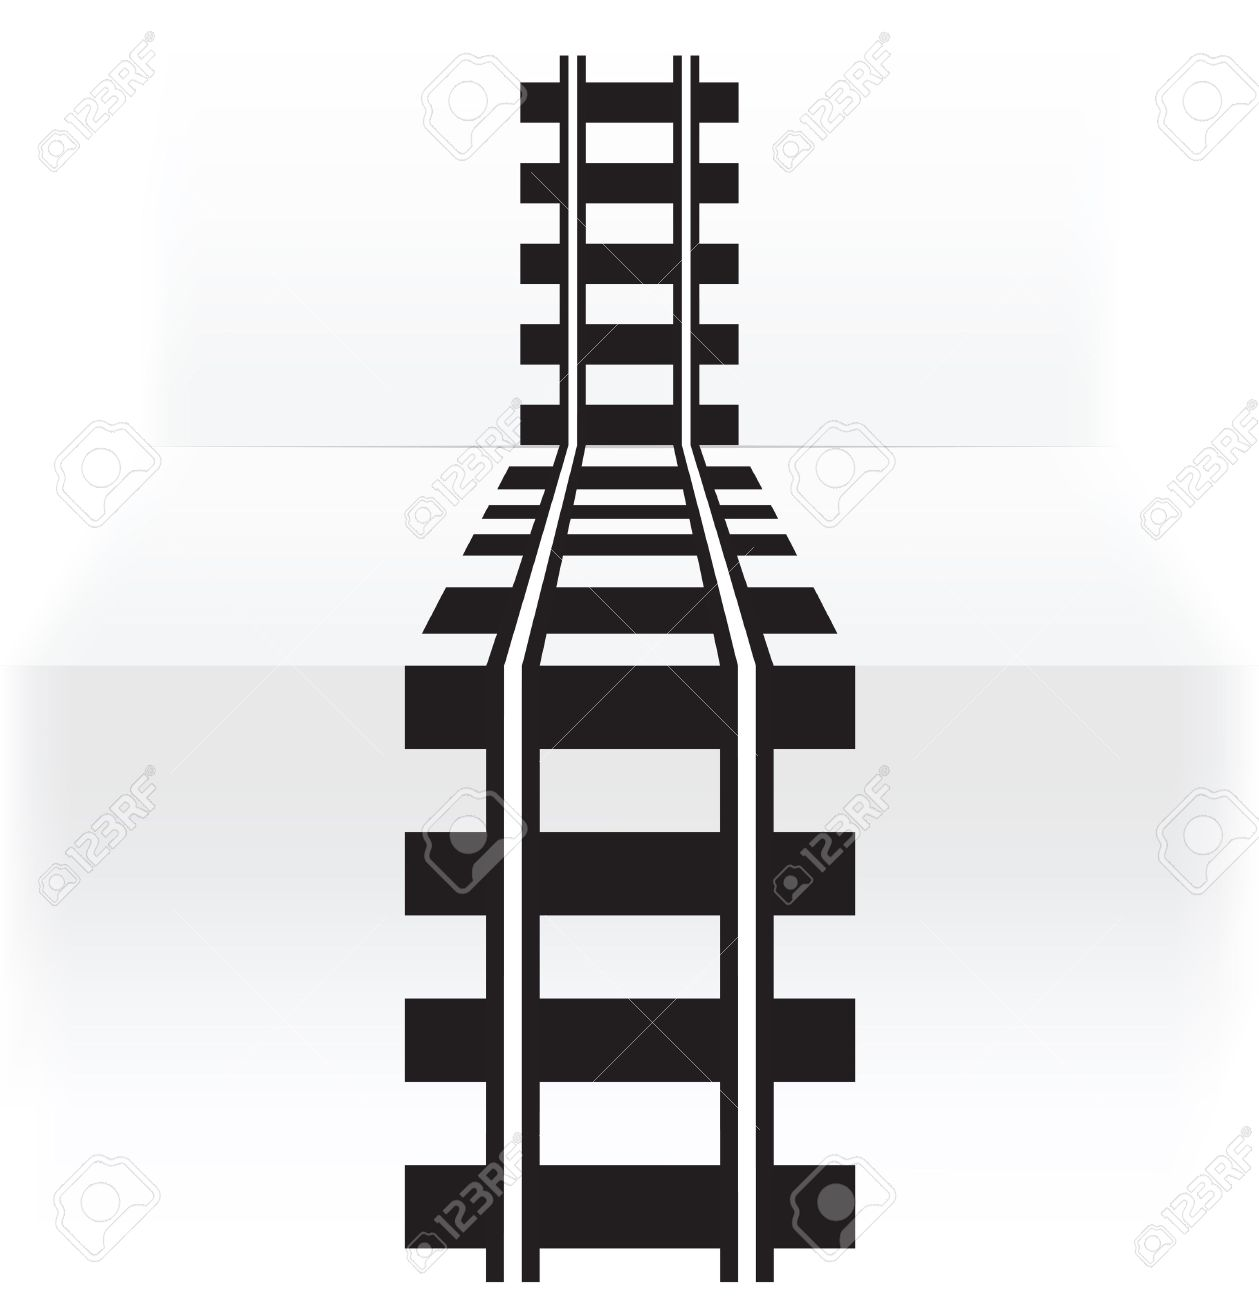 hight resolution of railway royalty free cliparts vectors and stock illustration